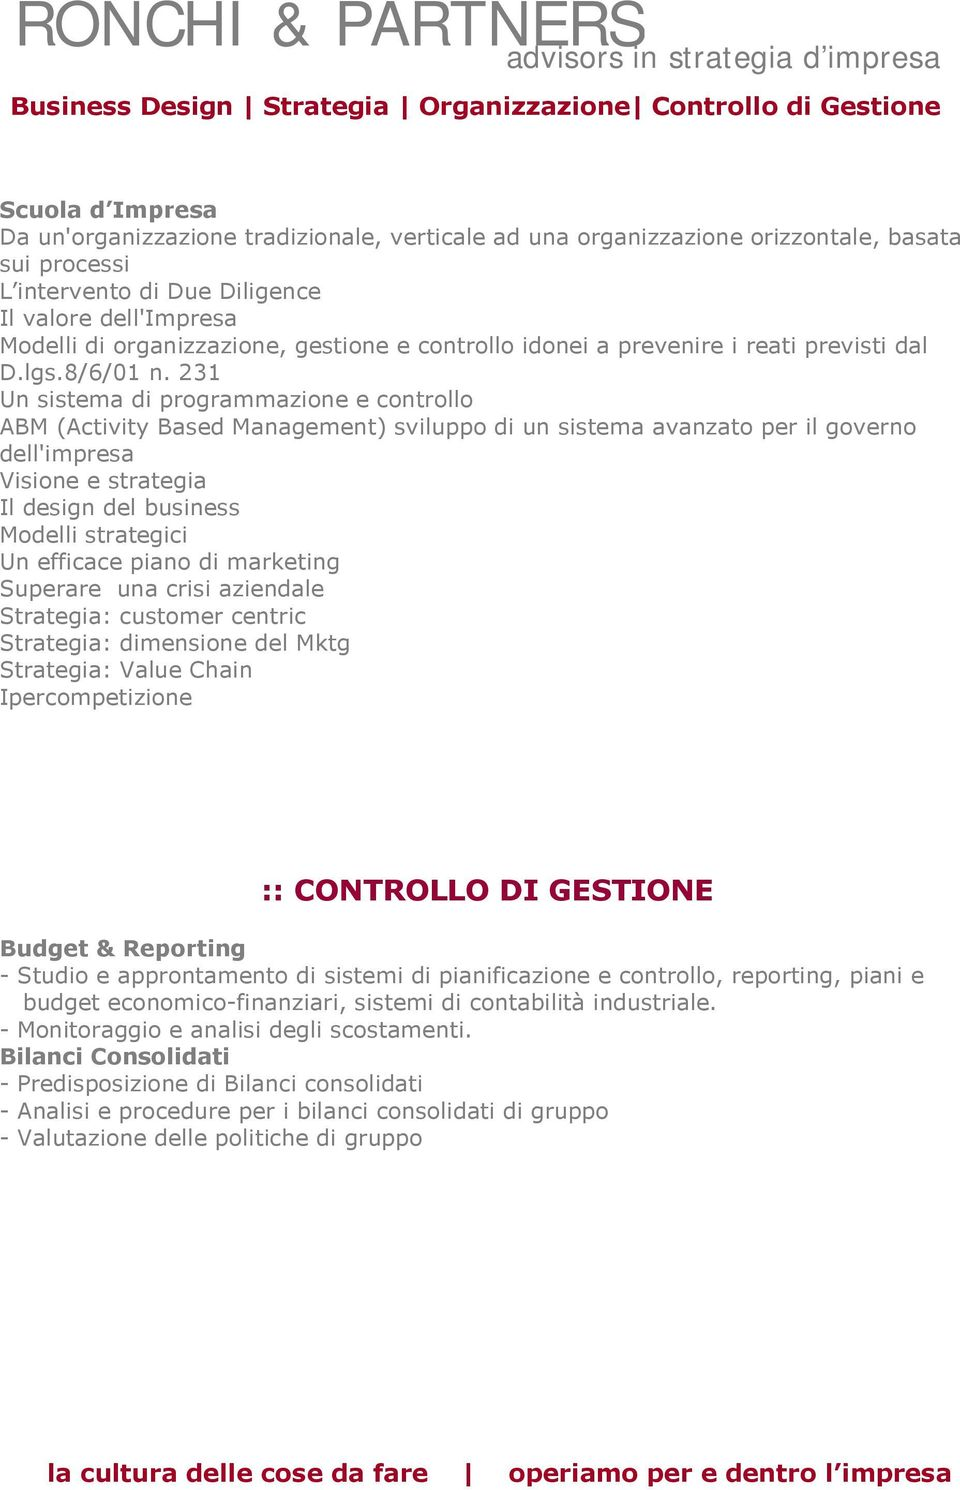 231 Un sistema di programmazione e controllo ABM (Activity Based Management) sviluppo di un sistema avanzato per il governo dell'impresa Visione e strategia Il design del business Modelli strategici